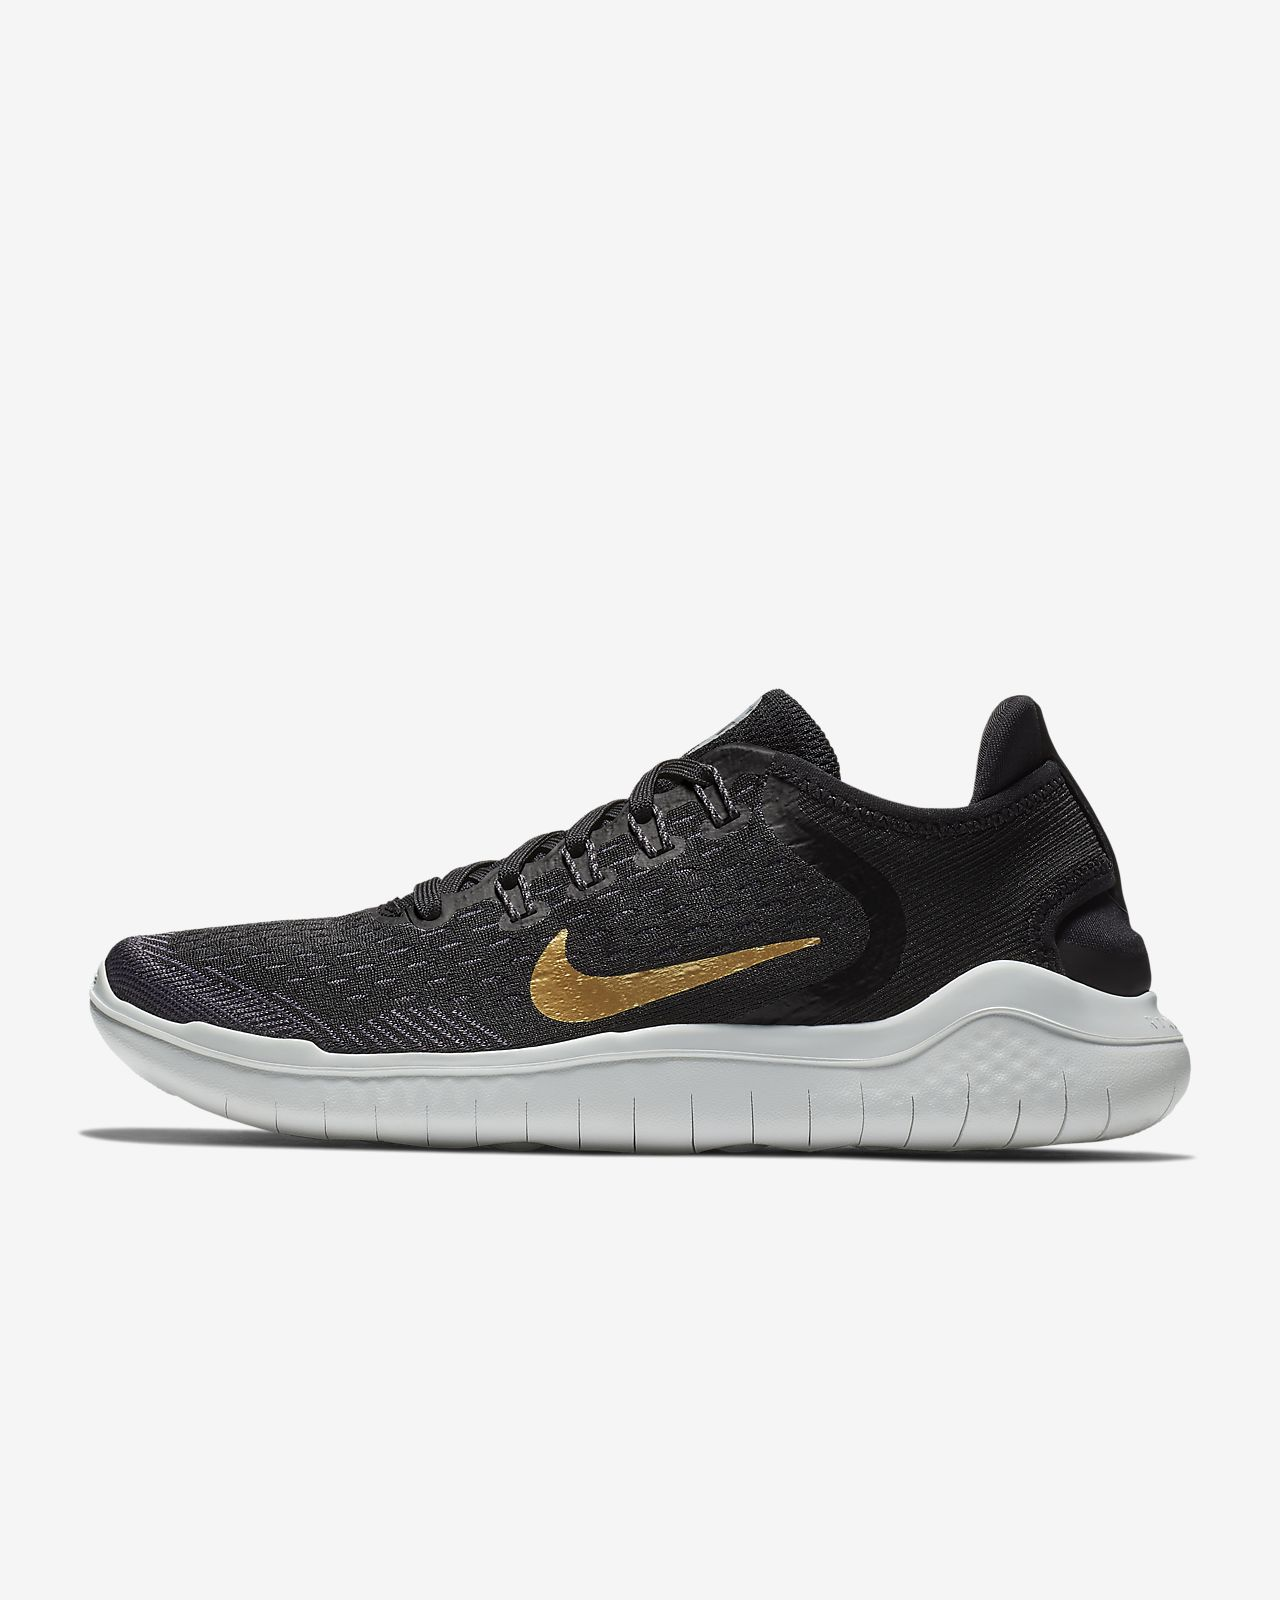 best loved 7f90b 8ccc4 ... Nike Free RN 2018 Women s Running Shoe